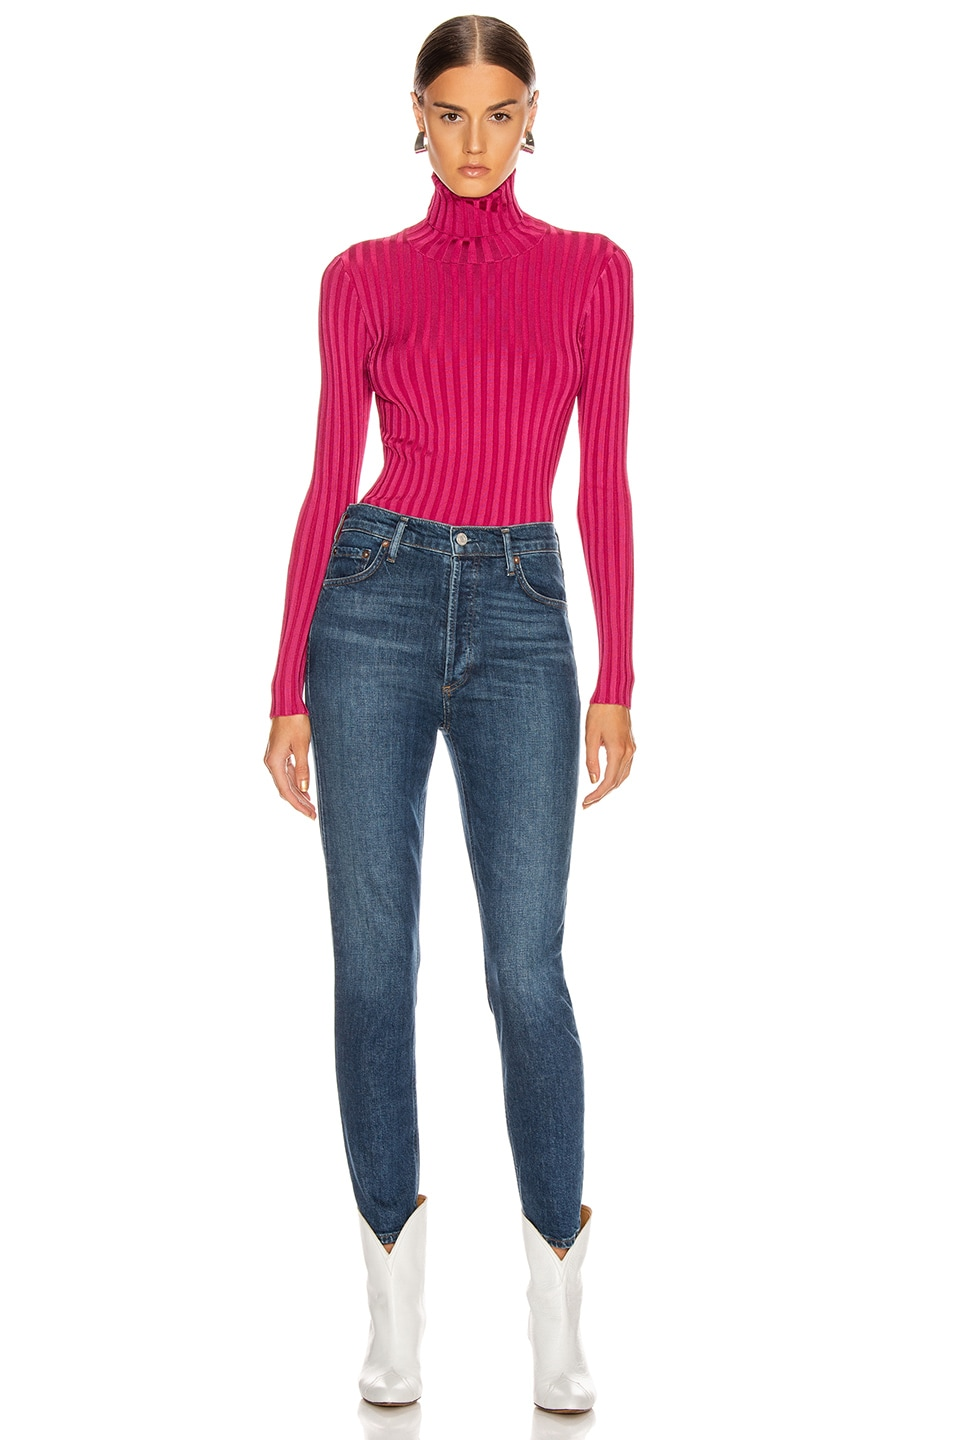 Image 4 of Veronica Beard Nellie Turtleneck Pullover Top in Berry Berry